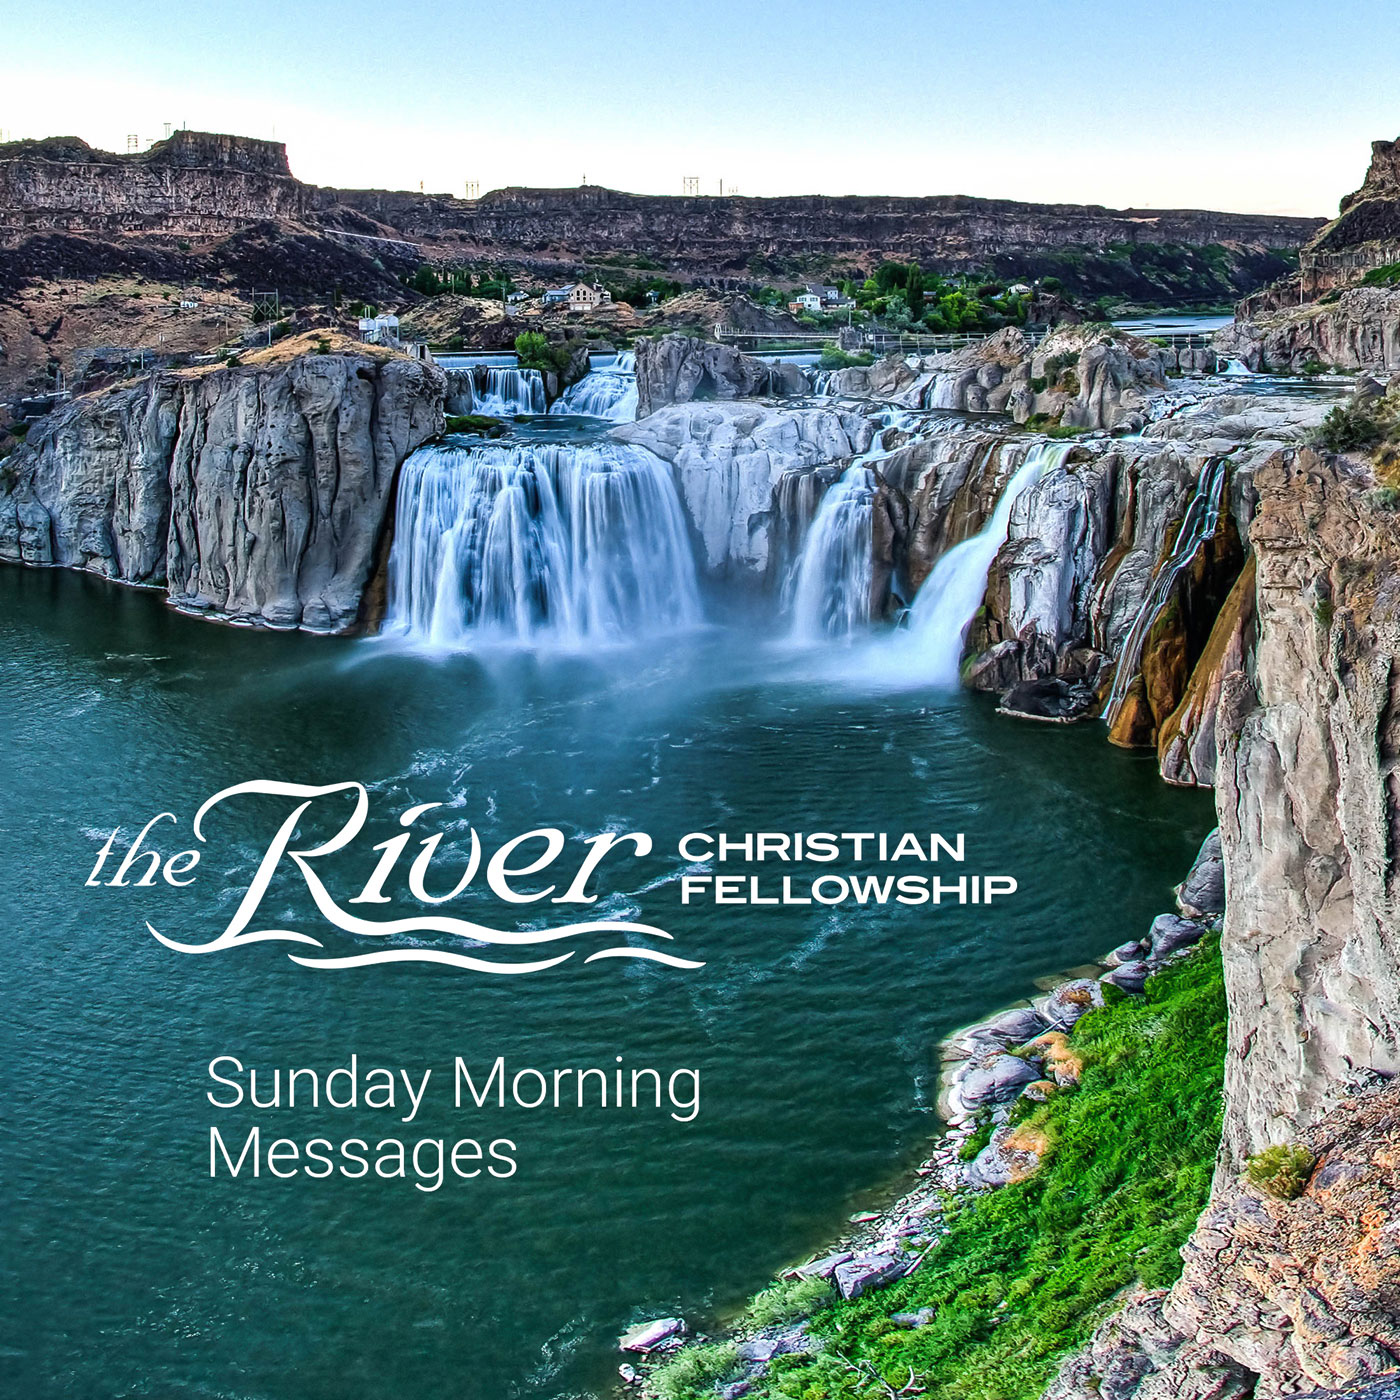 Sun AM - The River Christian Fellowship